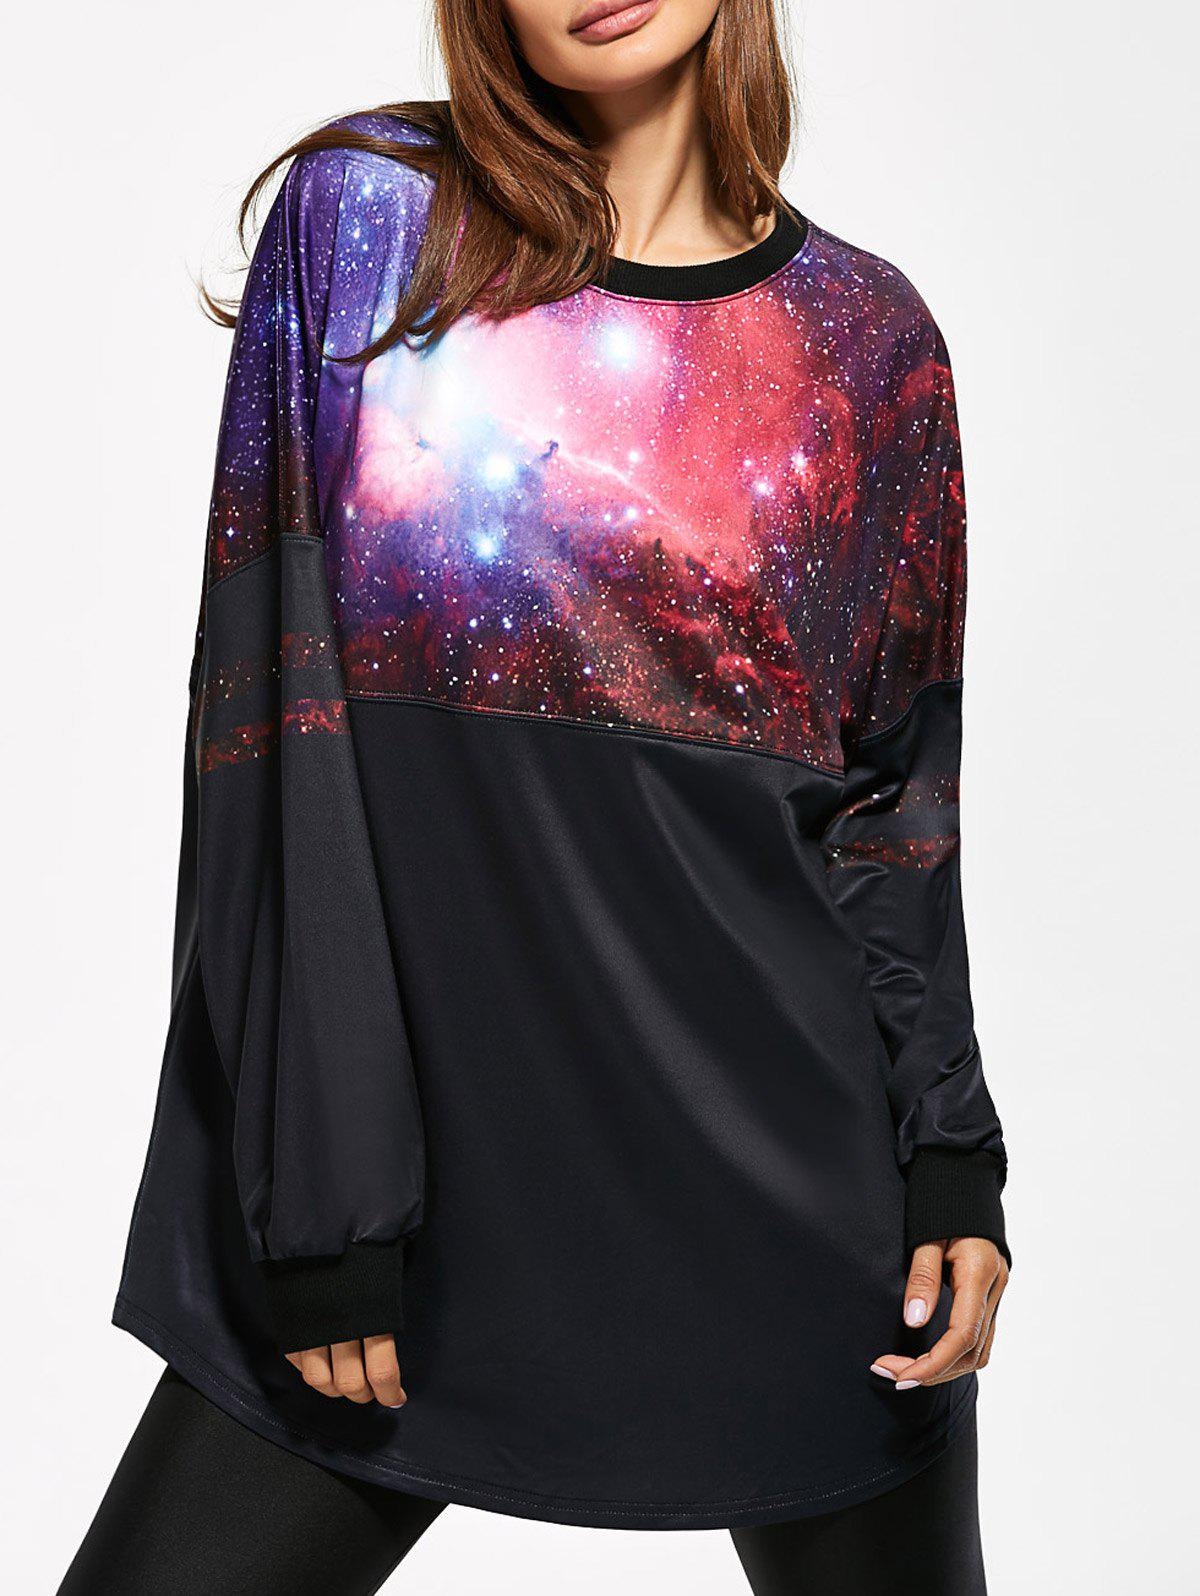 3D Galaxy Print Sweatshirt беспроводные наушники bluetooth philips shb6250